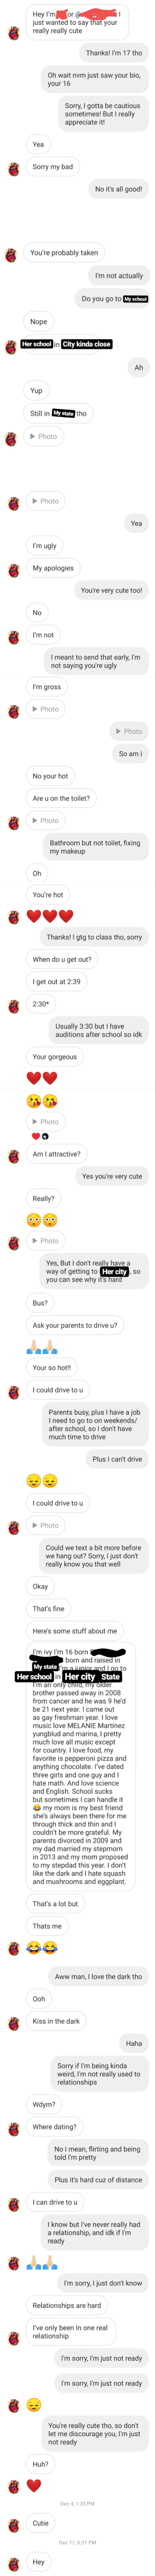 A text from a girl who flirted with me, I wasn't really interested since I was working something out with someone, I tried to let her down easy. Do you think I was unreasonable?: Hey I'm  just wanted to say that your  really really cute  or  Thanks! I'm 17 tho  Oh wait nvm just saw your bio,  your 16  Sorry, I gotta be cautious  sometimes! But I really  appreciate it!  Yea  Sorry my bad  No it's all good!  You're probably taken  I'm not actually  Do you go to My school  Nope  Her school in City kinda close  Ah  Yup  Still in My state tho  • Photo  Photo  Yea  I'm ugly  My apologies  You're very cute too!  No  I'm not  I meant to send that early, l'm  not saying you're ugly  I'm gross  Photo  Photo  So am i  No your hot  Are u on the toilet?  Photo  Bathroom but not toilet, fixing  my makeup  Oh  You're hot  Thanks! I gtg to class tho, sorry  When do u get out?  I get out at 2:39  2:30*  Usually 3:30 but I have  auditions after school so idk  Your gorgeous  Photo  Am I attractive?  Yes you're very cute  Really?  Photo  Yes, But I don't really have a  way of getting to Her city, so  you can see why it's hard  Bus?  Ask your parents to drive u?  Your so hot!!  I could drive to u  Parents busy, plus I have a job  I need to go to on weekends/  after school, so I don't have  much time to drive  Plus I can't drive  I could drive to u  Photo  Could we text a bit more before  we hang out? Sorry, I just don't  really know you that well  Okay  That's fine  Here's some stuff about me  I'm ivy I'm 16 born  born and raised in  My state I'm a iunior and l gọ to  Her school in Her city State  I'm an only chila, my older  brother passed away in 2008  from cancer and he was 9 he'd  be 21 next year. I came out  as gay freshman year. I love  music love MELANIE Martinez  yungblud and marina, I pretty  much love all music except  for country. I love food, my  favorite is pepperoni pizza and  anything chocolate. I've dated  three girls and one guy and I  hate math. And love science  and E